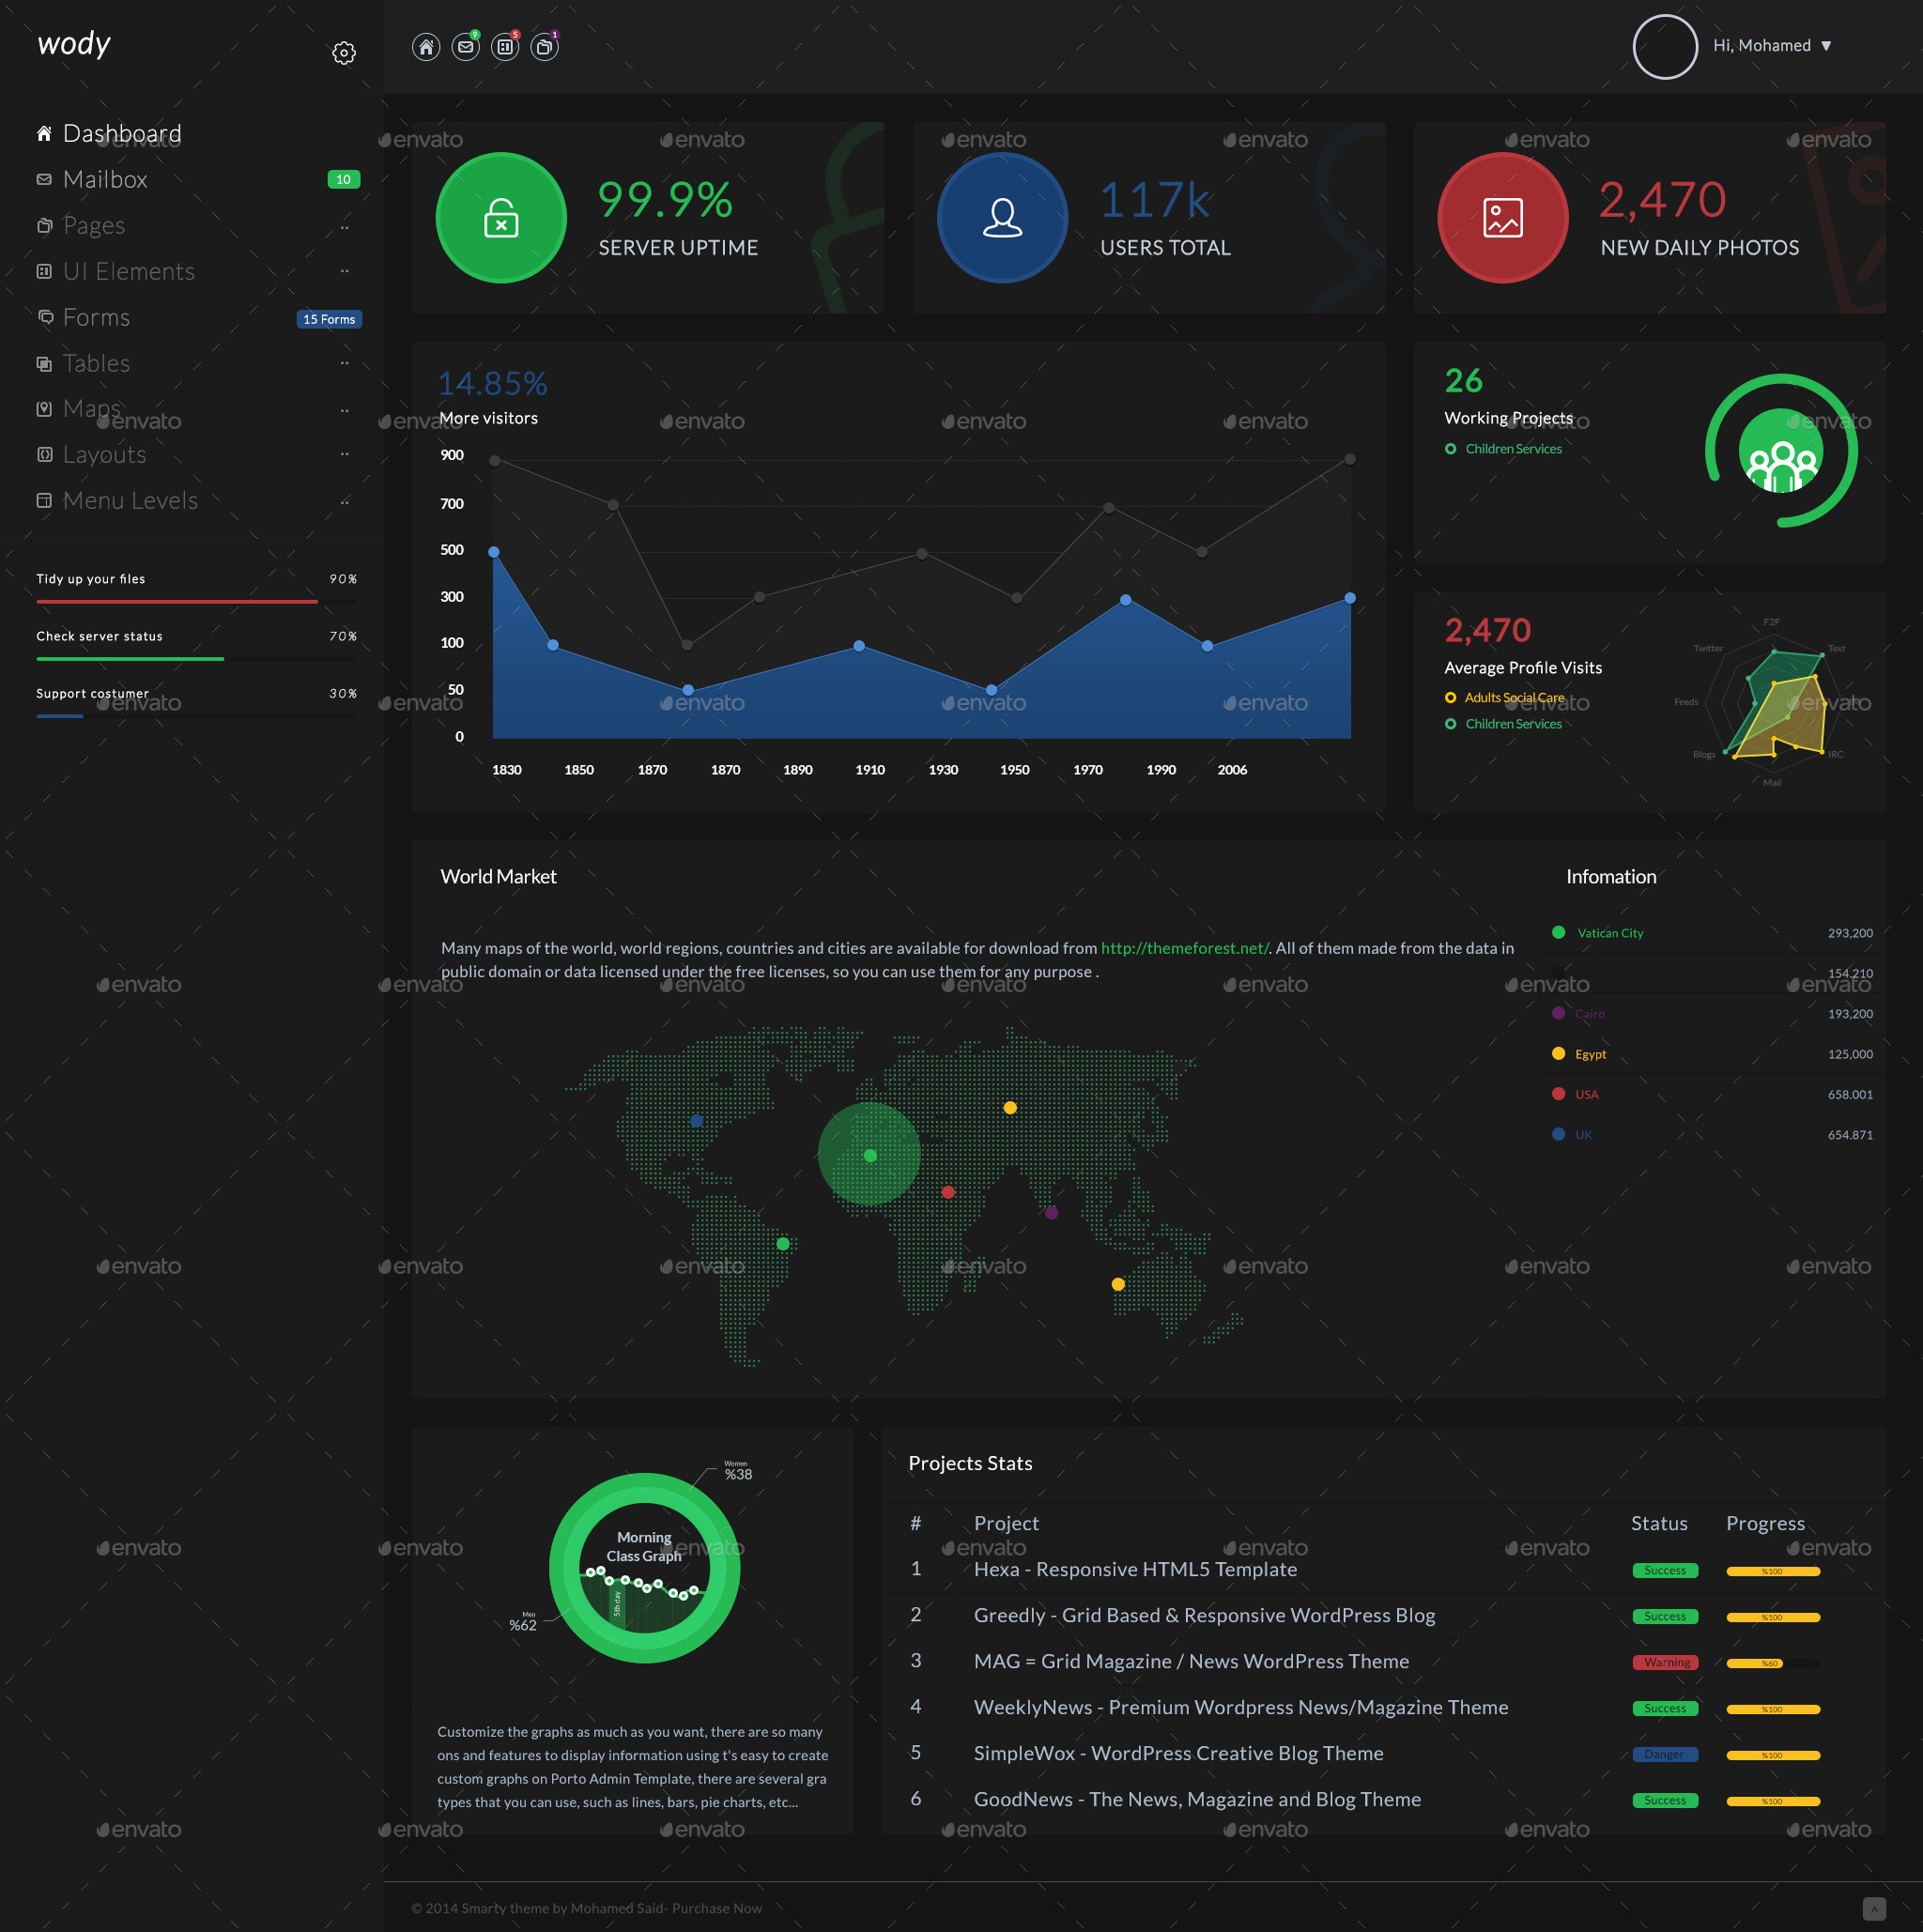 Wody Web App Bootstrap Admin Template By Ra Themes